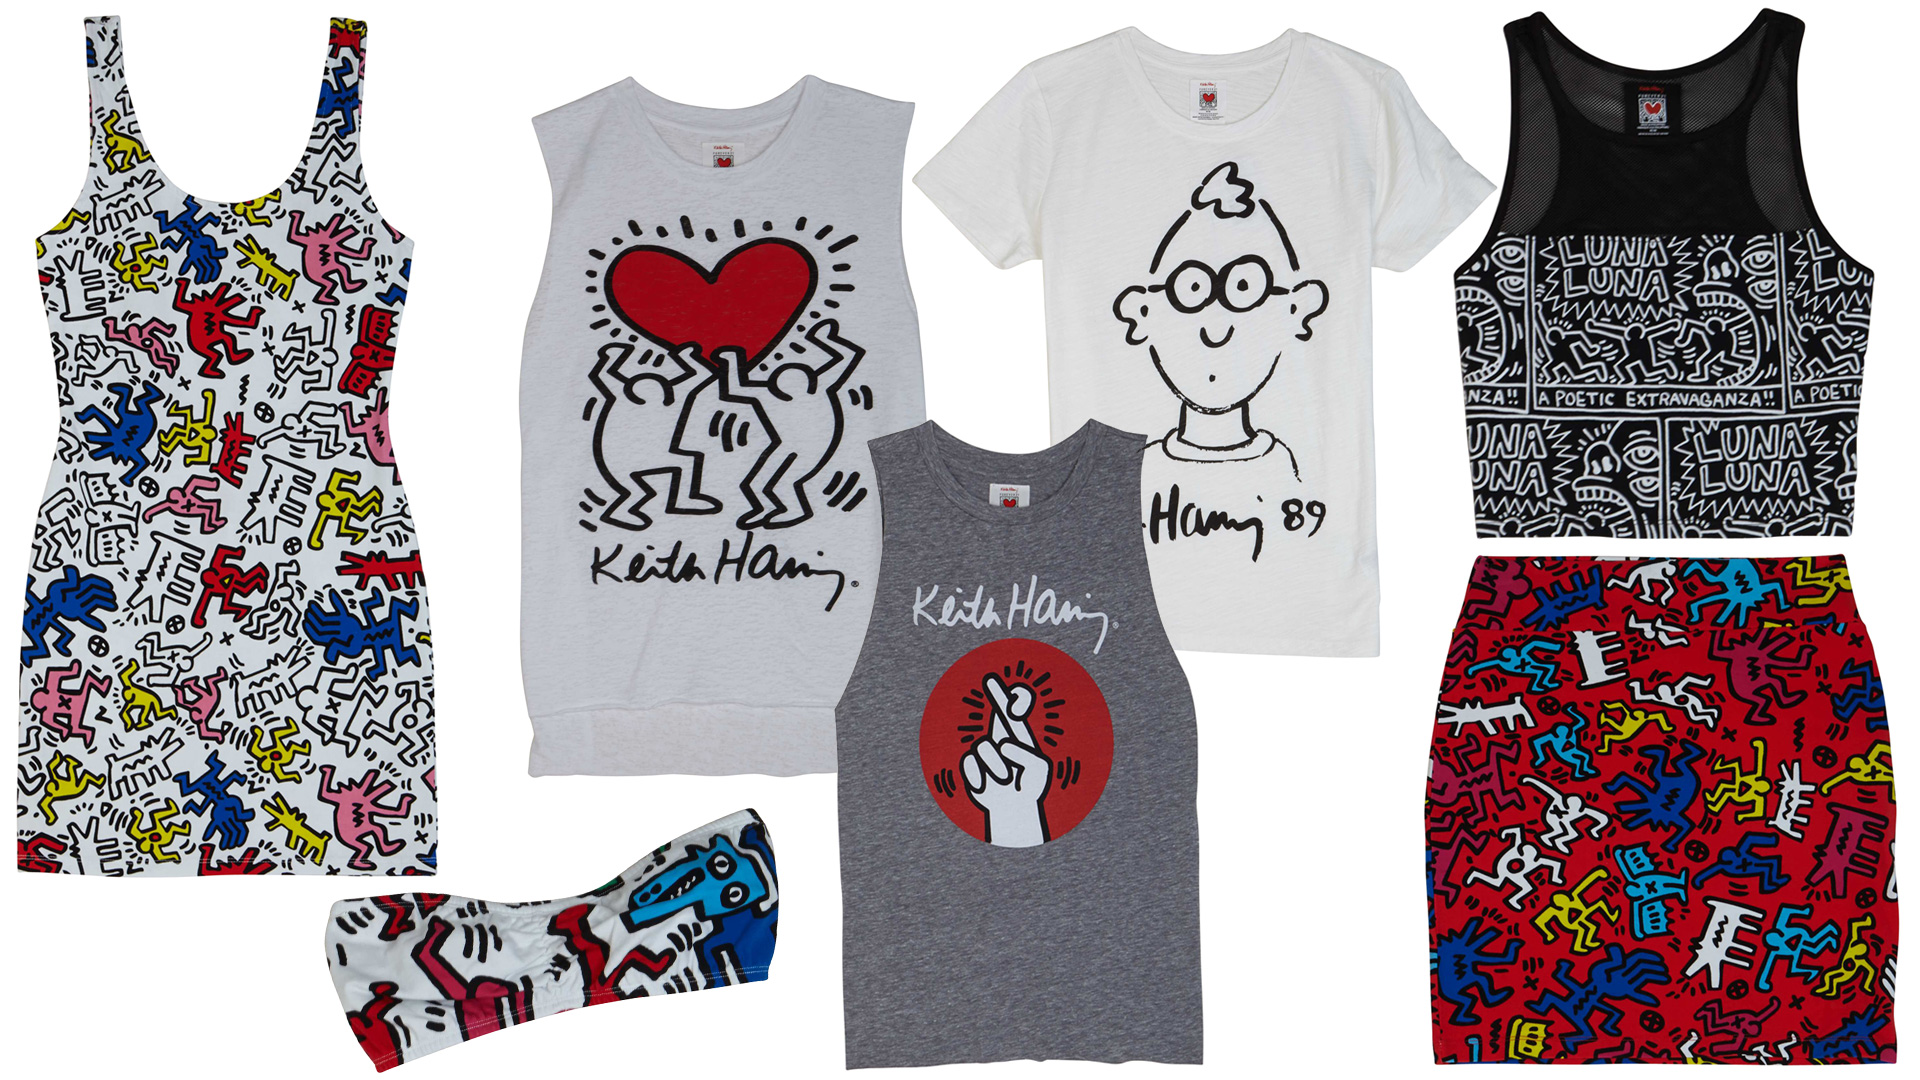 Forever 21: Keith Haring collection